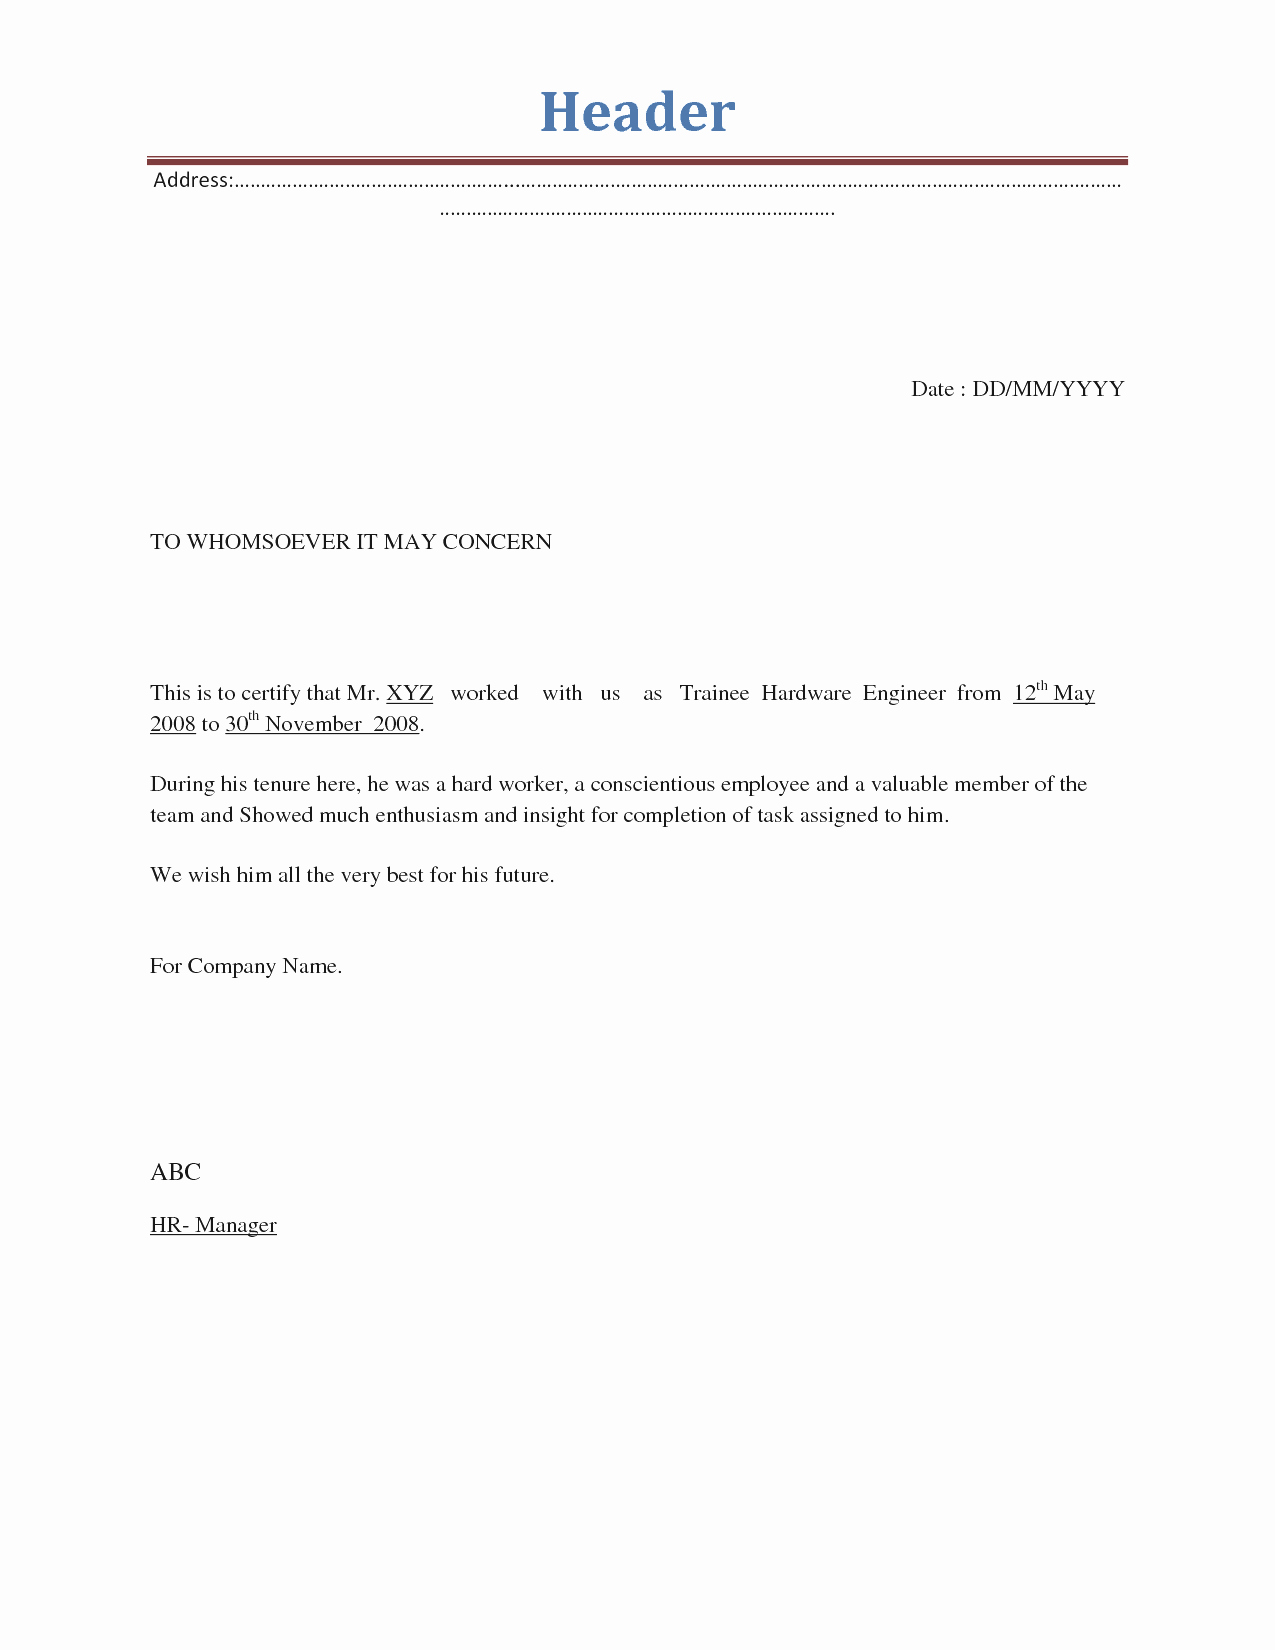 Business Contract Termination Letter Template Elegant Mittee Meeting Agenda Template – Teplates for Every Day